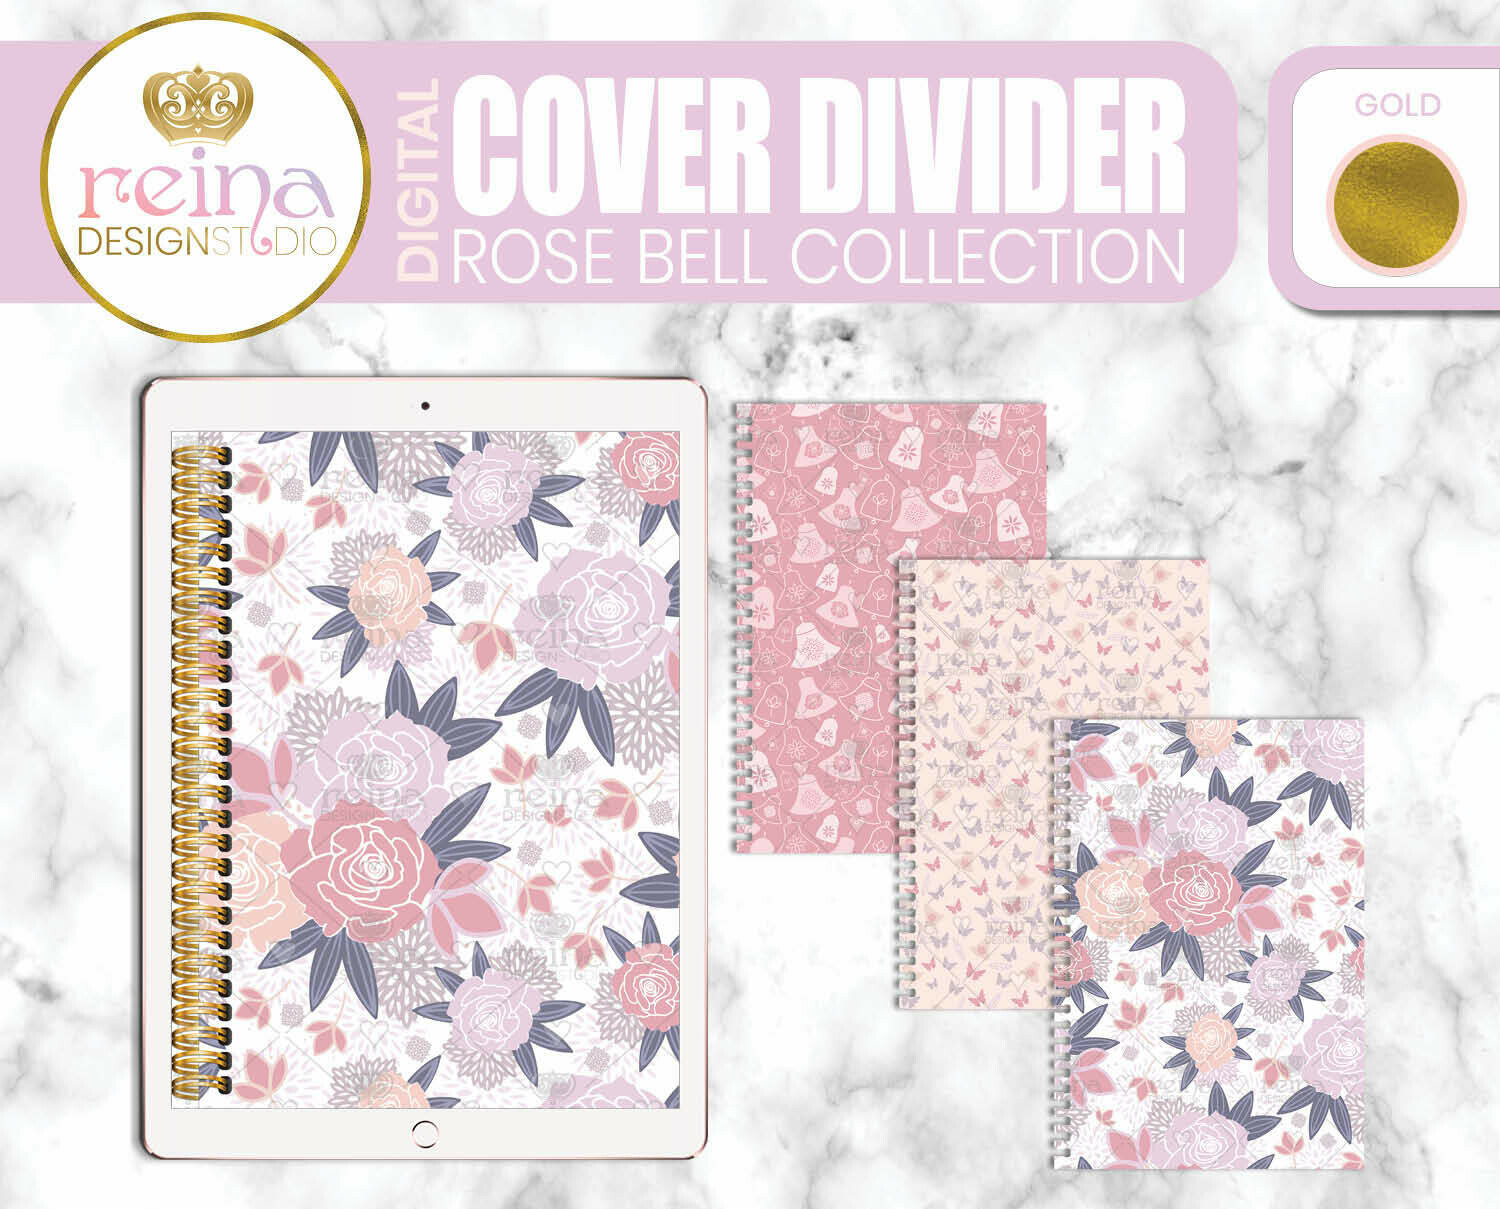 Interchangeable Digital Planner Cover and Dividers | Rose Bell, Gold